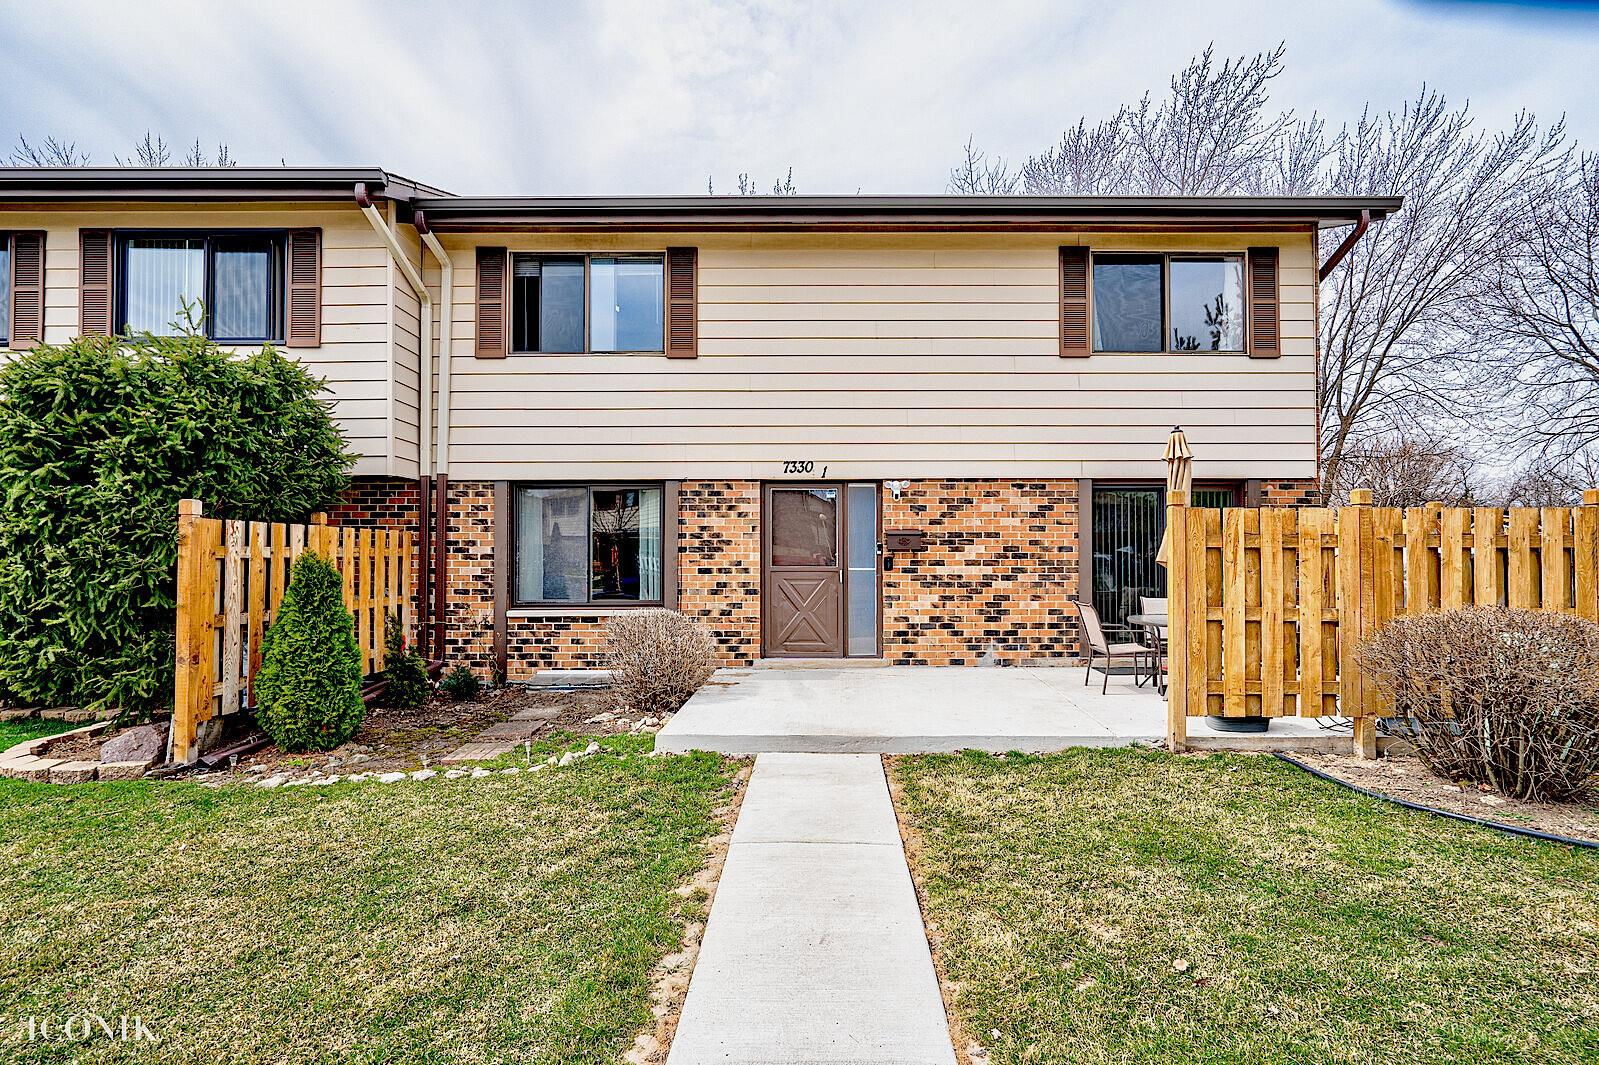 7330 Winthrop Way #1, Downers Grove, IL 60516 - #: 11109291